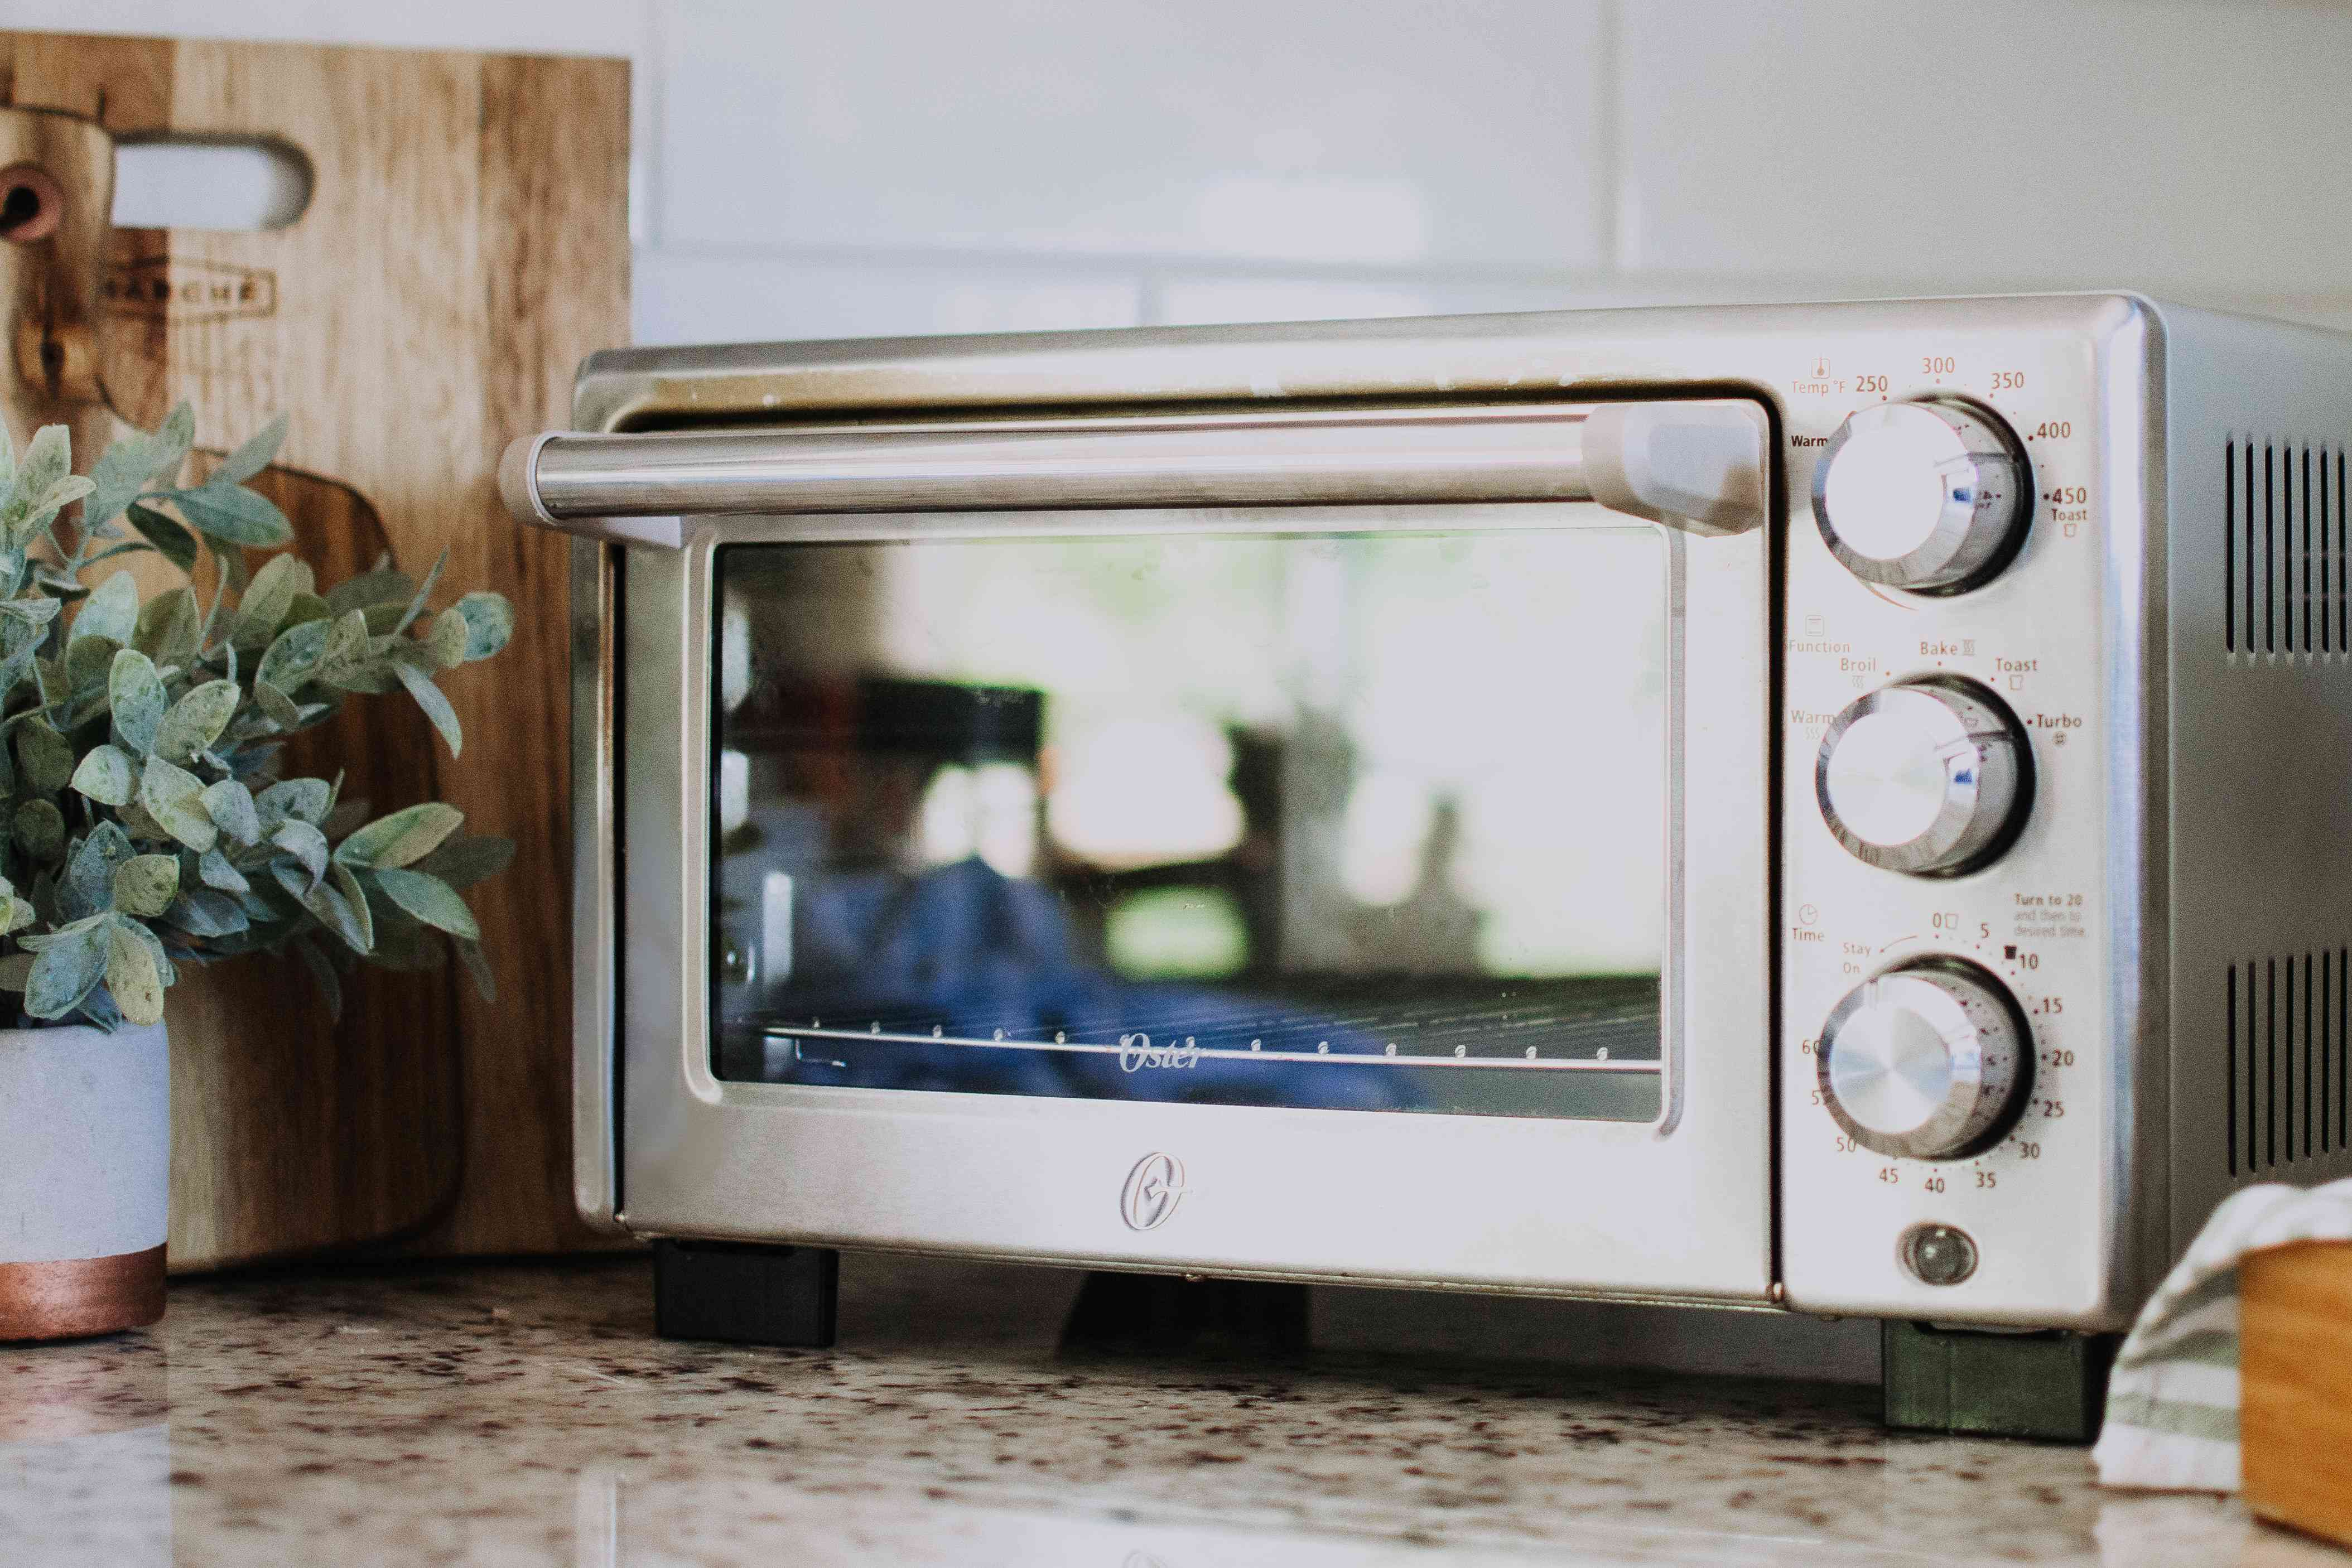 a clean toaster oven